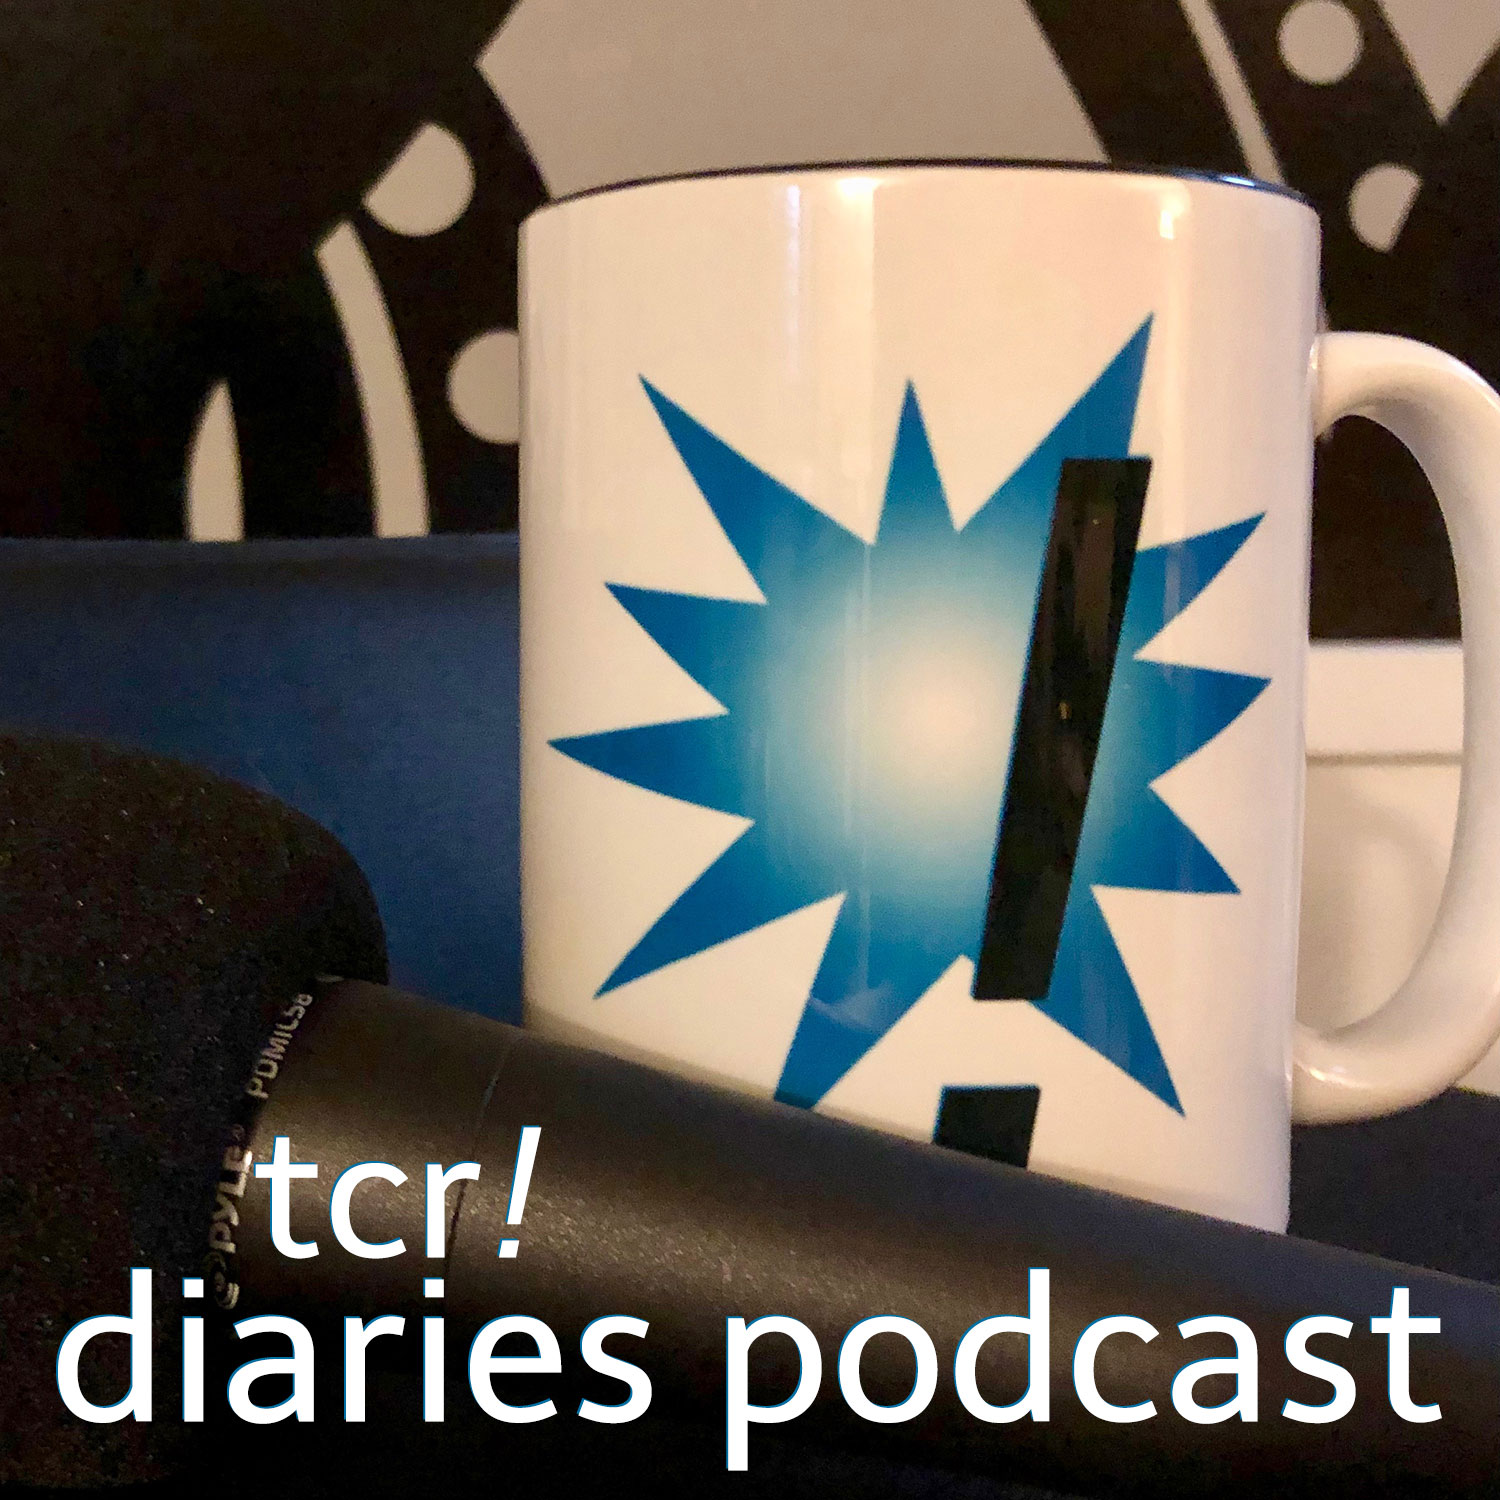 tcr! diaries - podcast by tcr! on Apple Podcasts